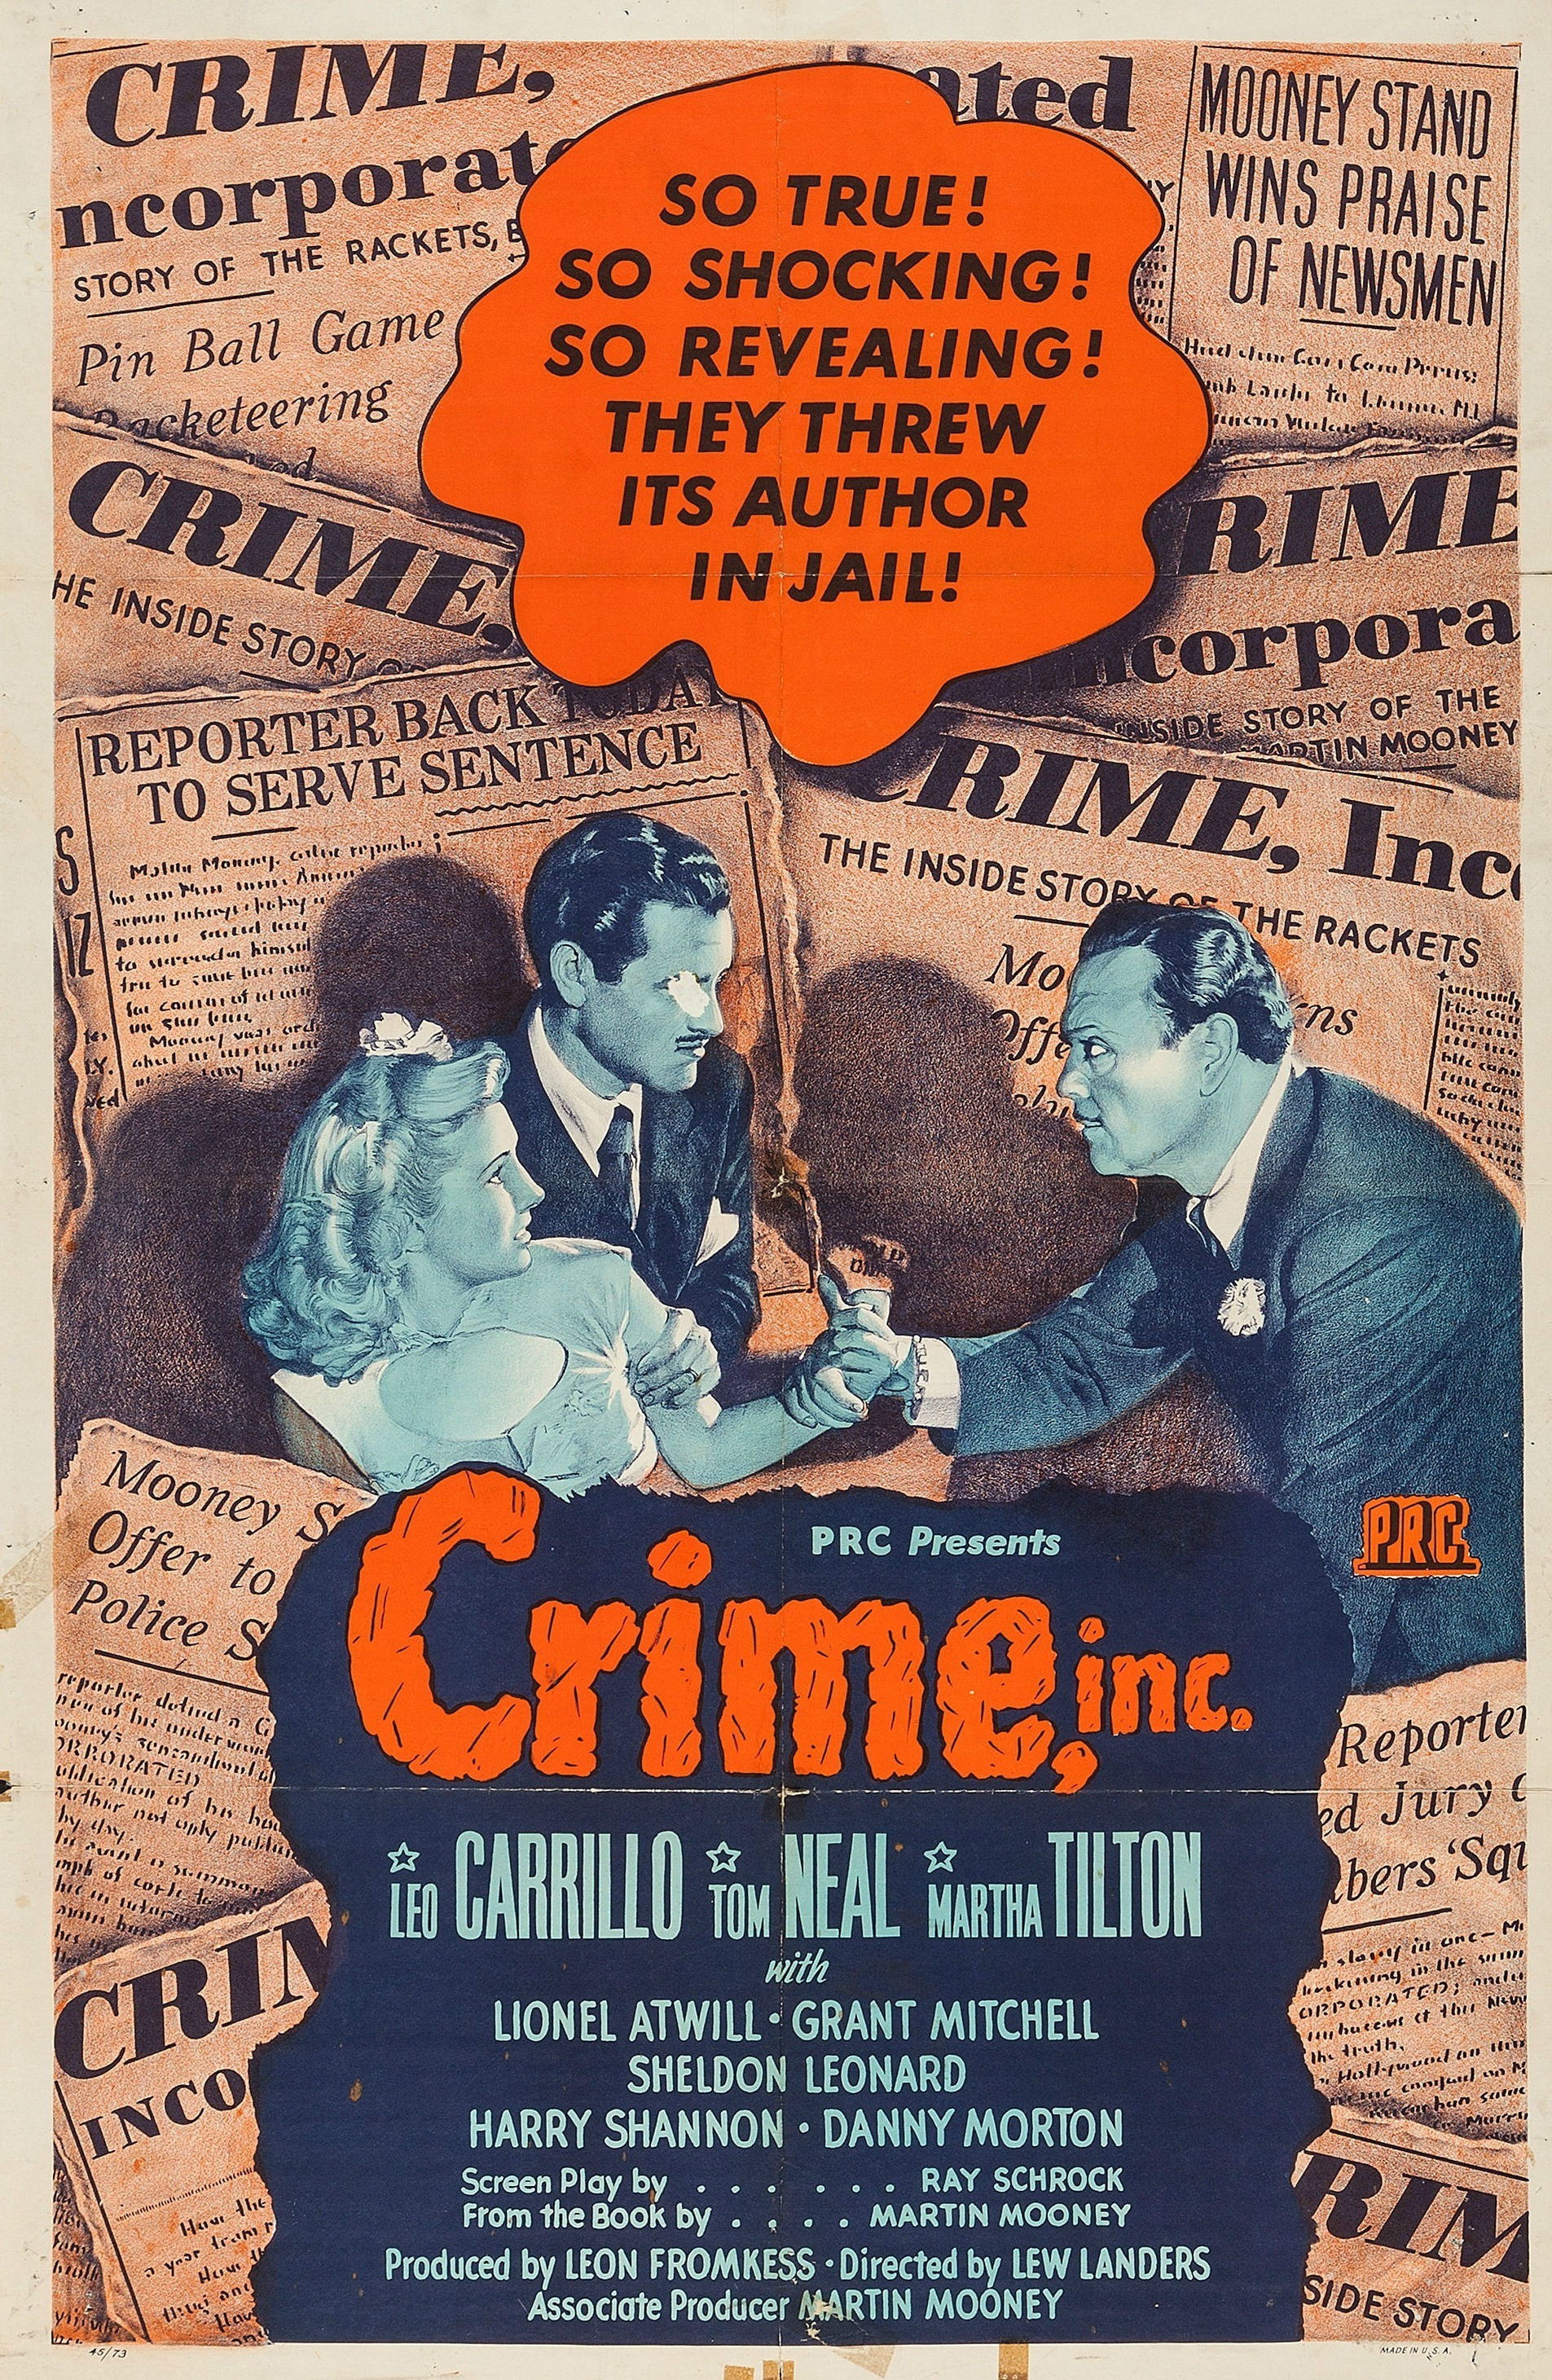 image Crime, Inc. Watch Full Movie Free Online